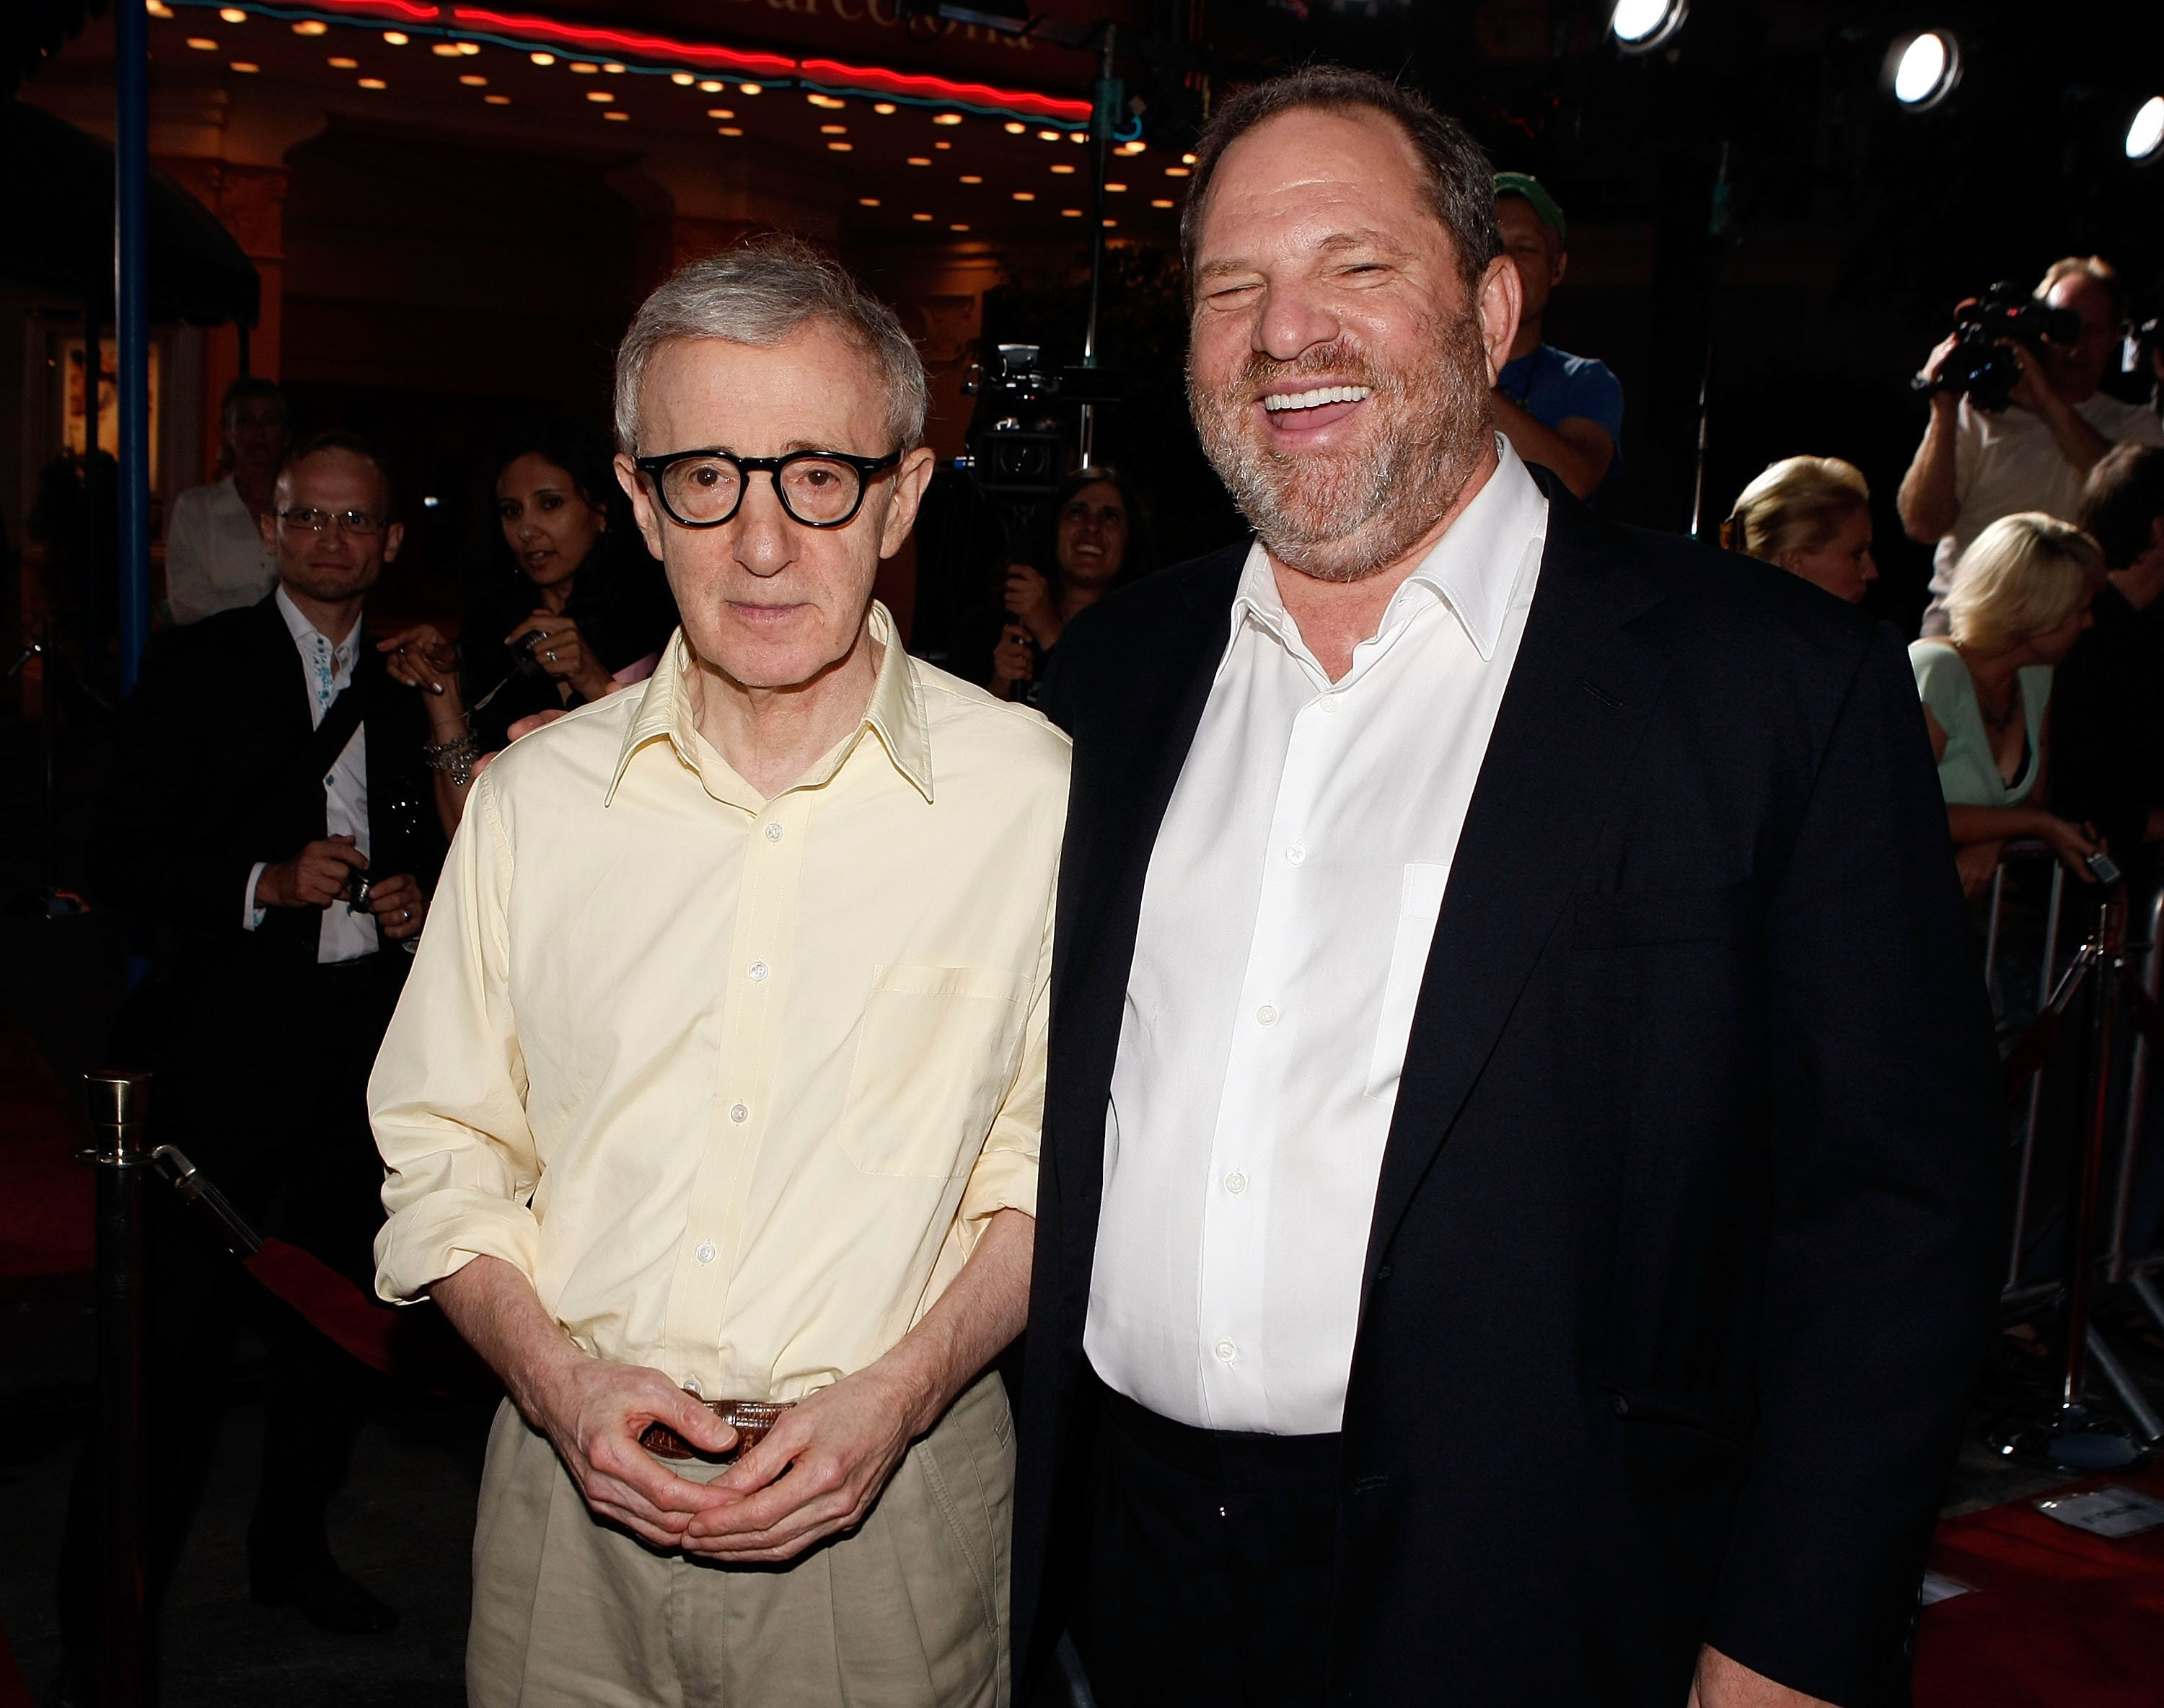 Harvey Weinstein Helped Woody Allen Save His Career After Abuse Allegations